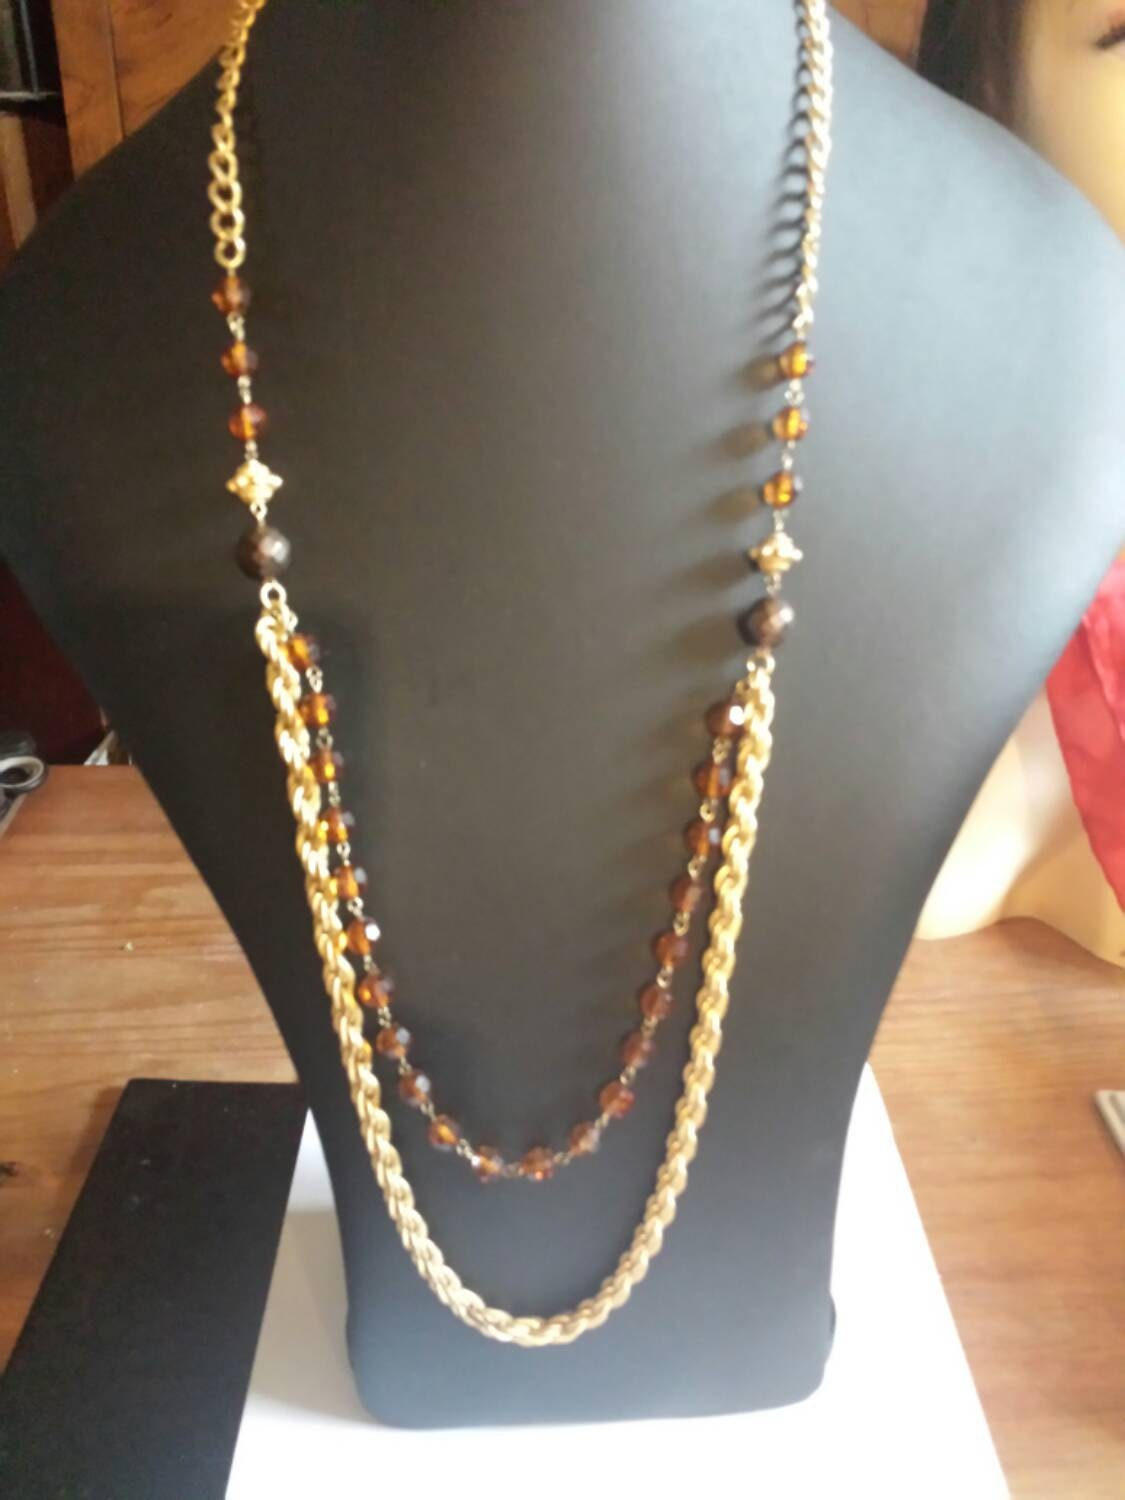 Multi Chain And Bead Necklace Drop Necklace Vintage.rope chain Amber beads 34Inches long